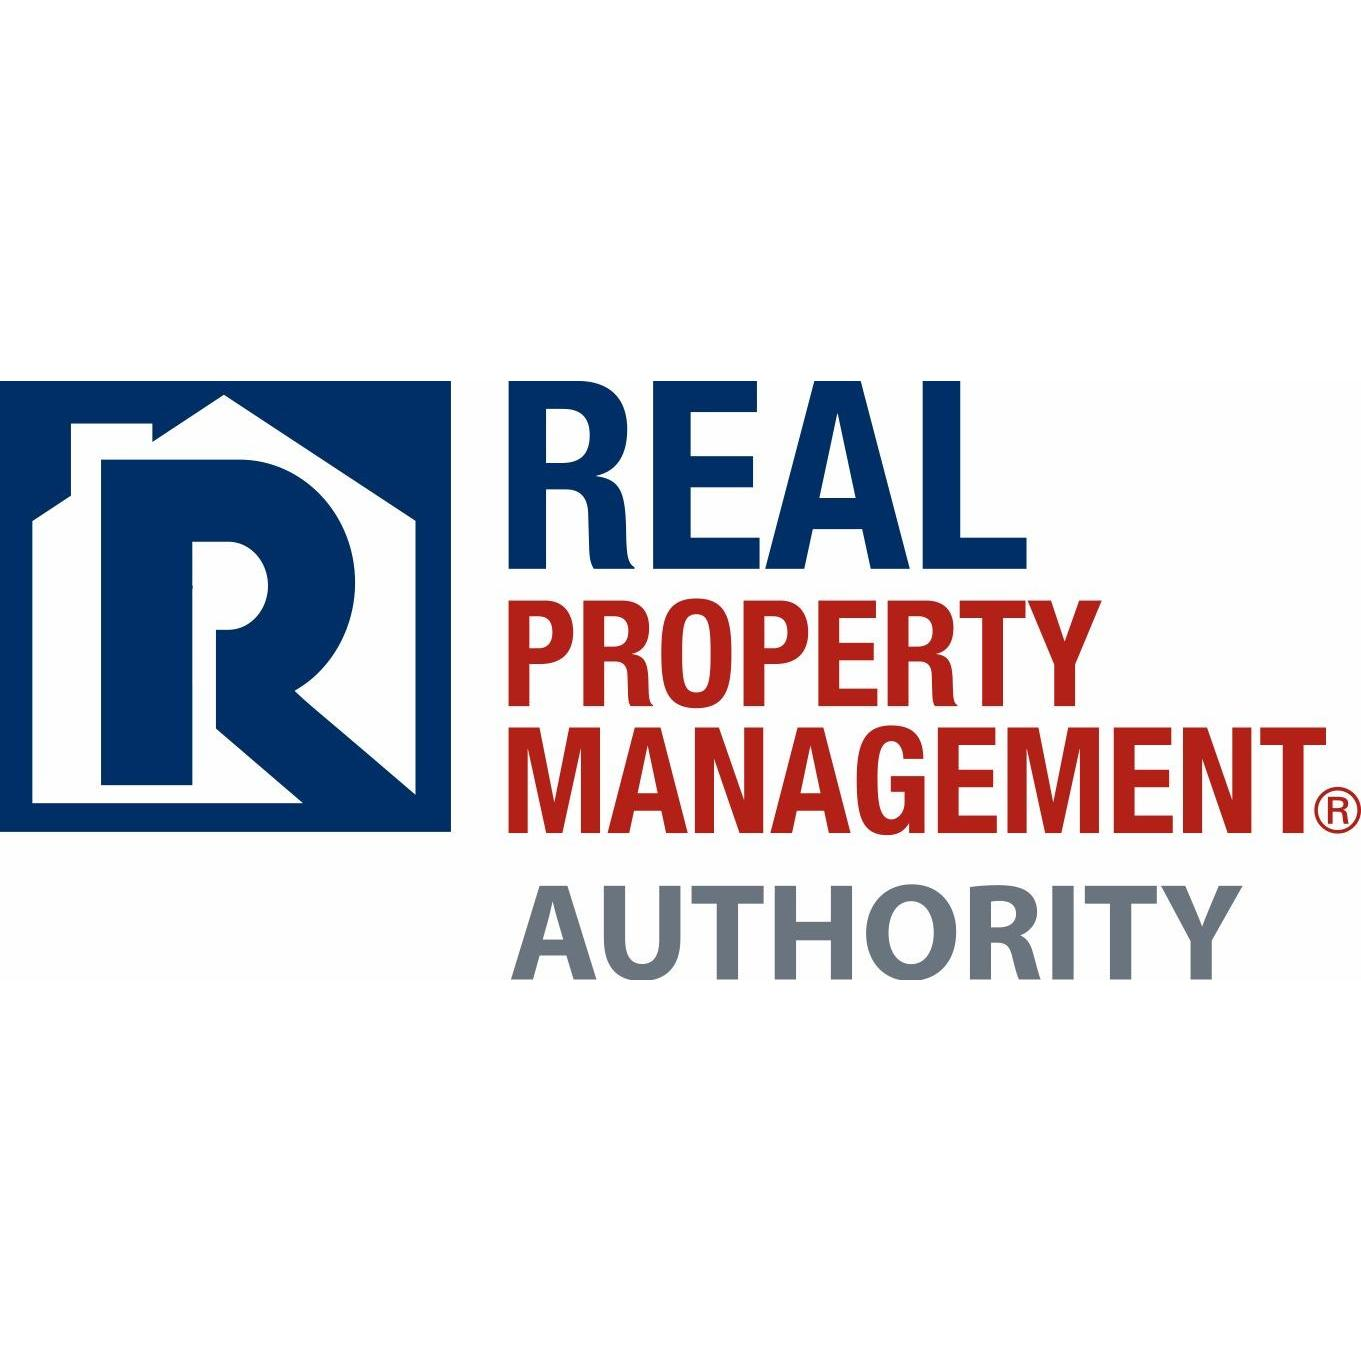 Real Property Management Authority